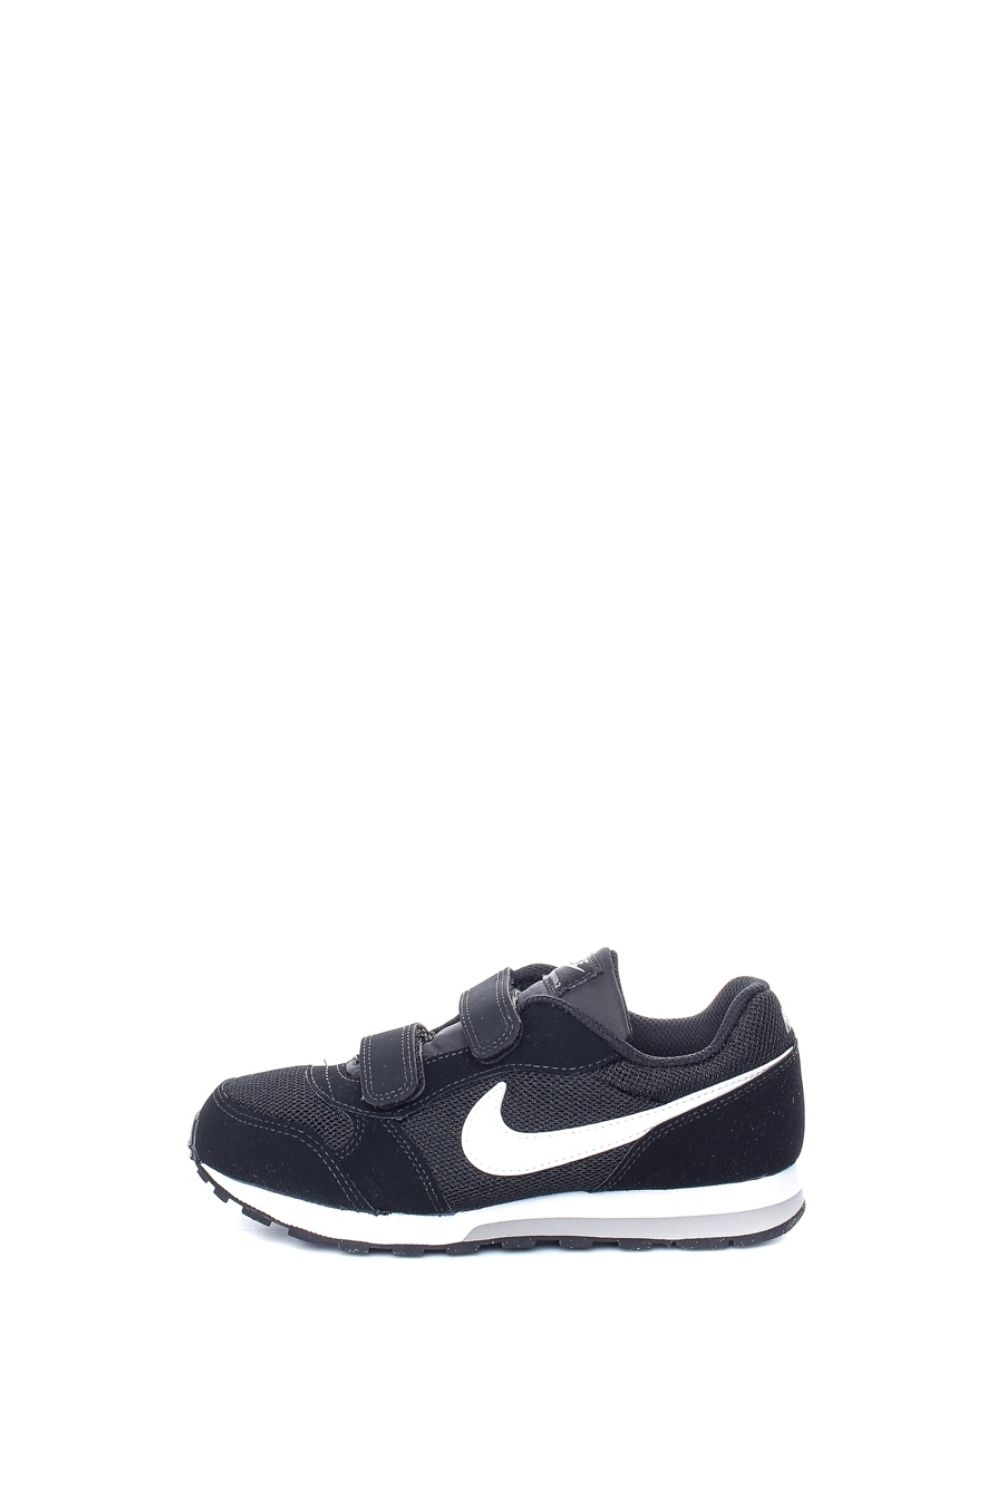 Collective Online NIKE – Παιδικά αθλητικά παπούτσια NIKE MD RUNNER 2 μπλε d92a2828b51